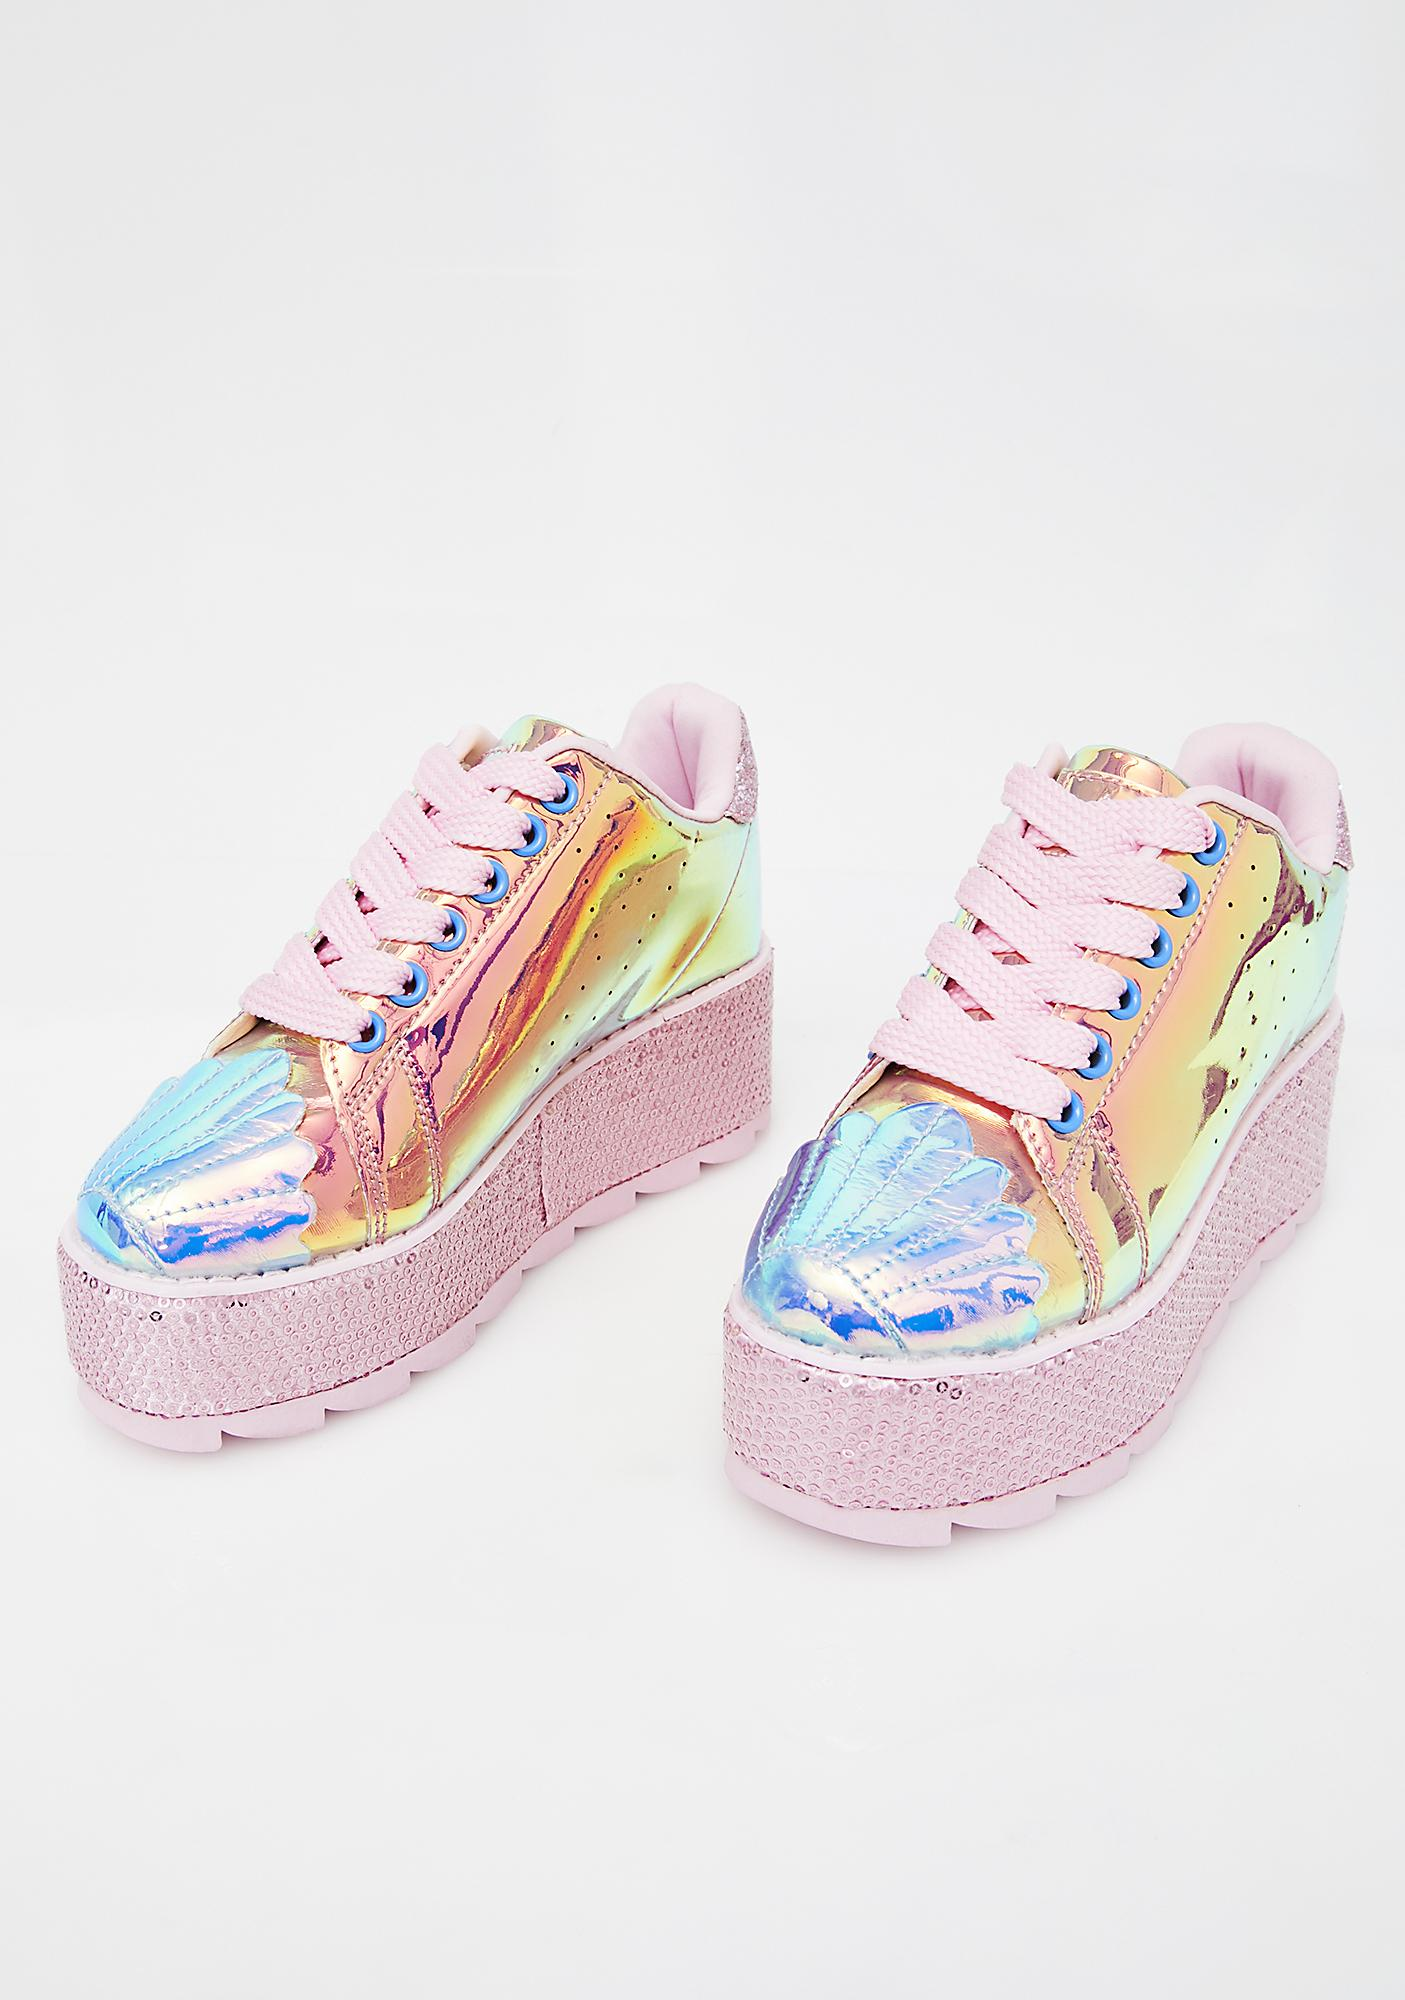 Y.R.U. Mermaid Lala Platform Sneakers